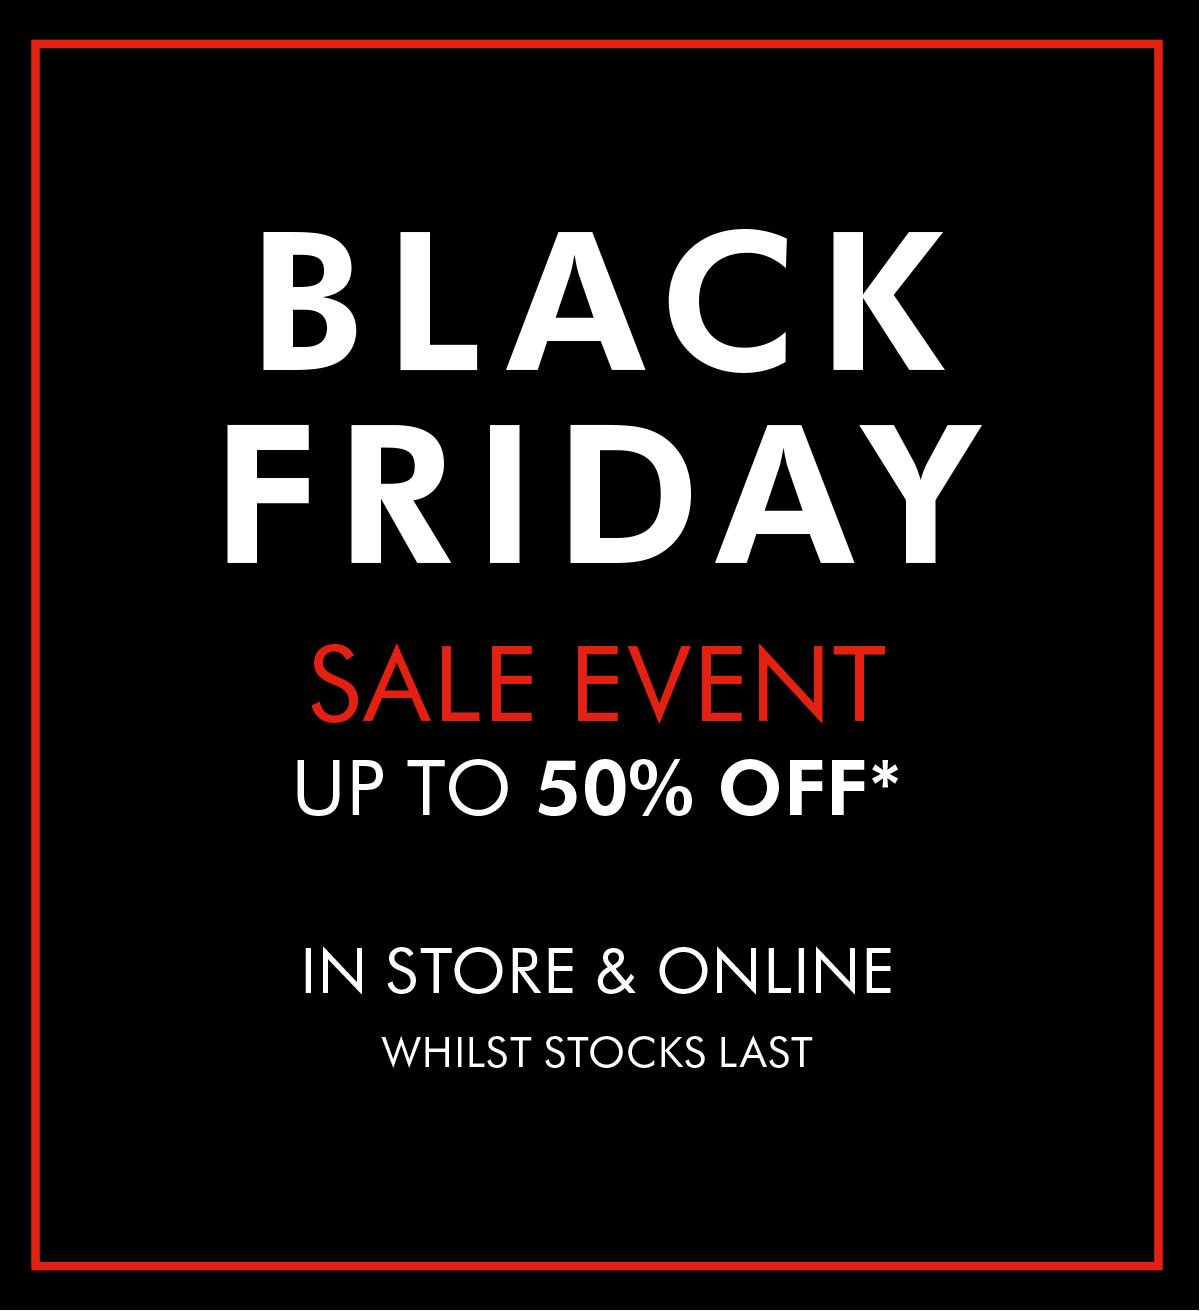 b4cee5d11109 Go bonkers for Black Friday - Matalan Email Archive